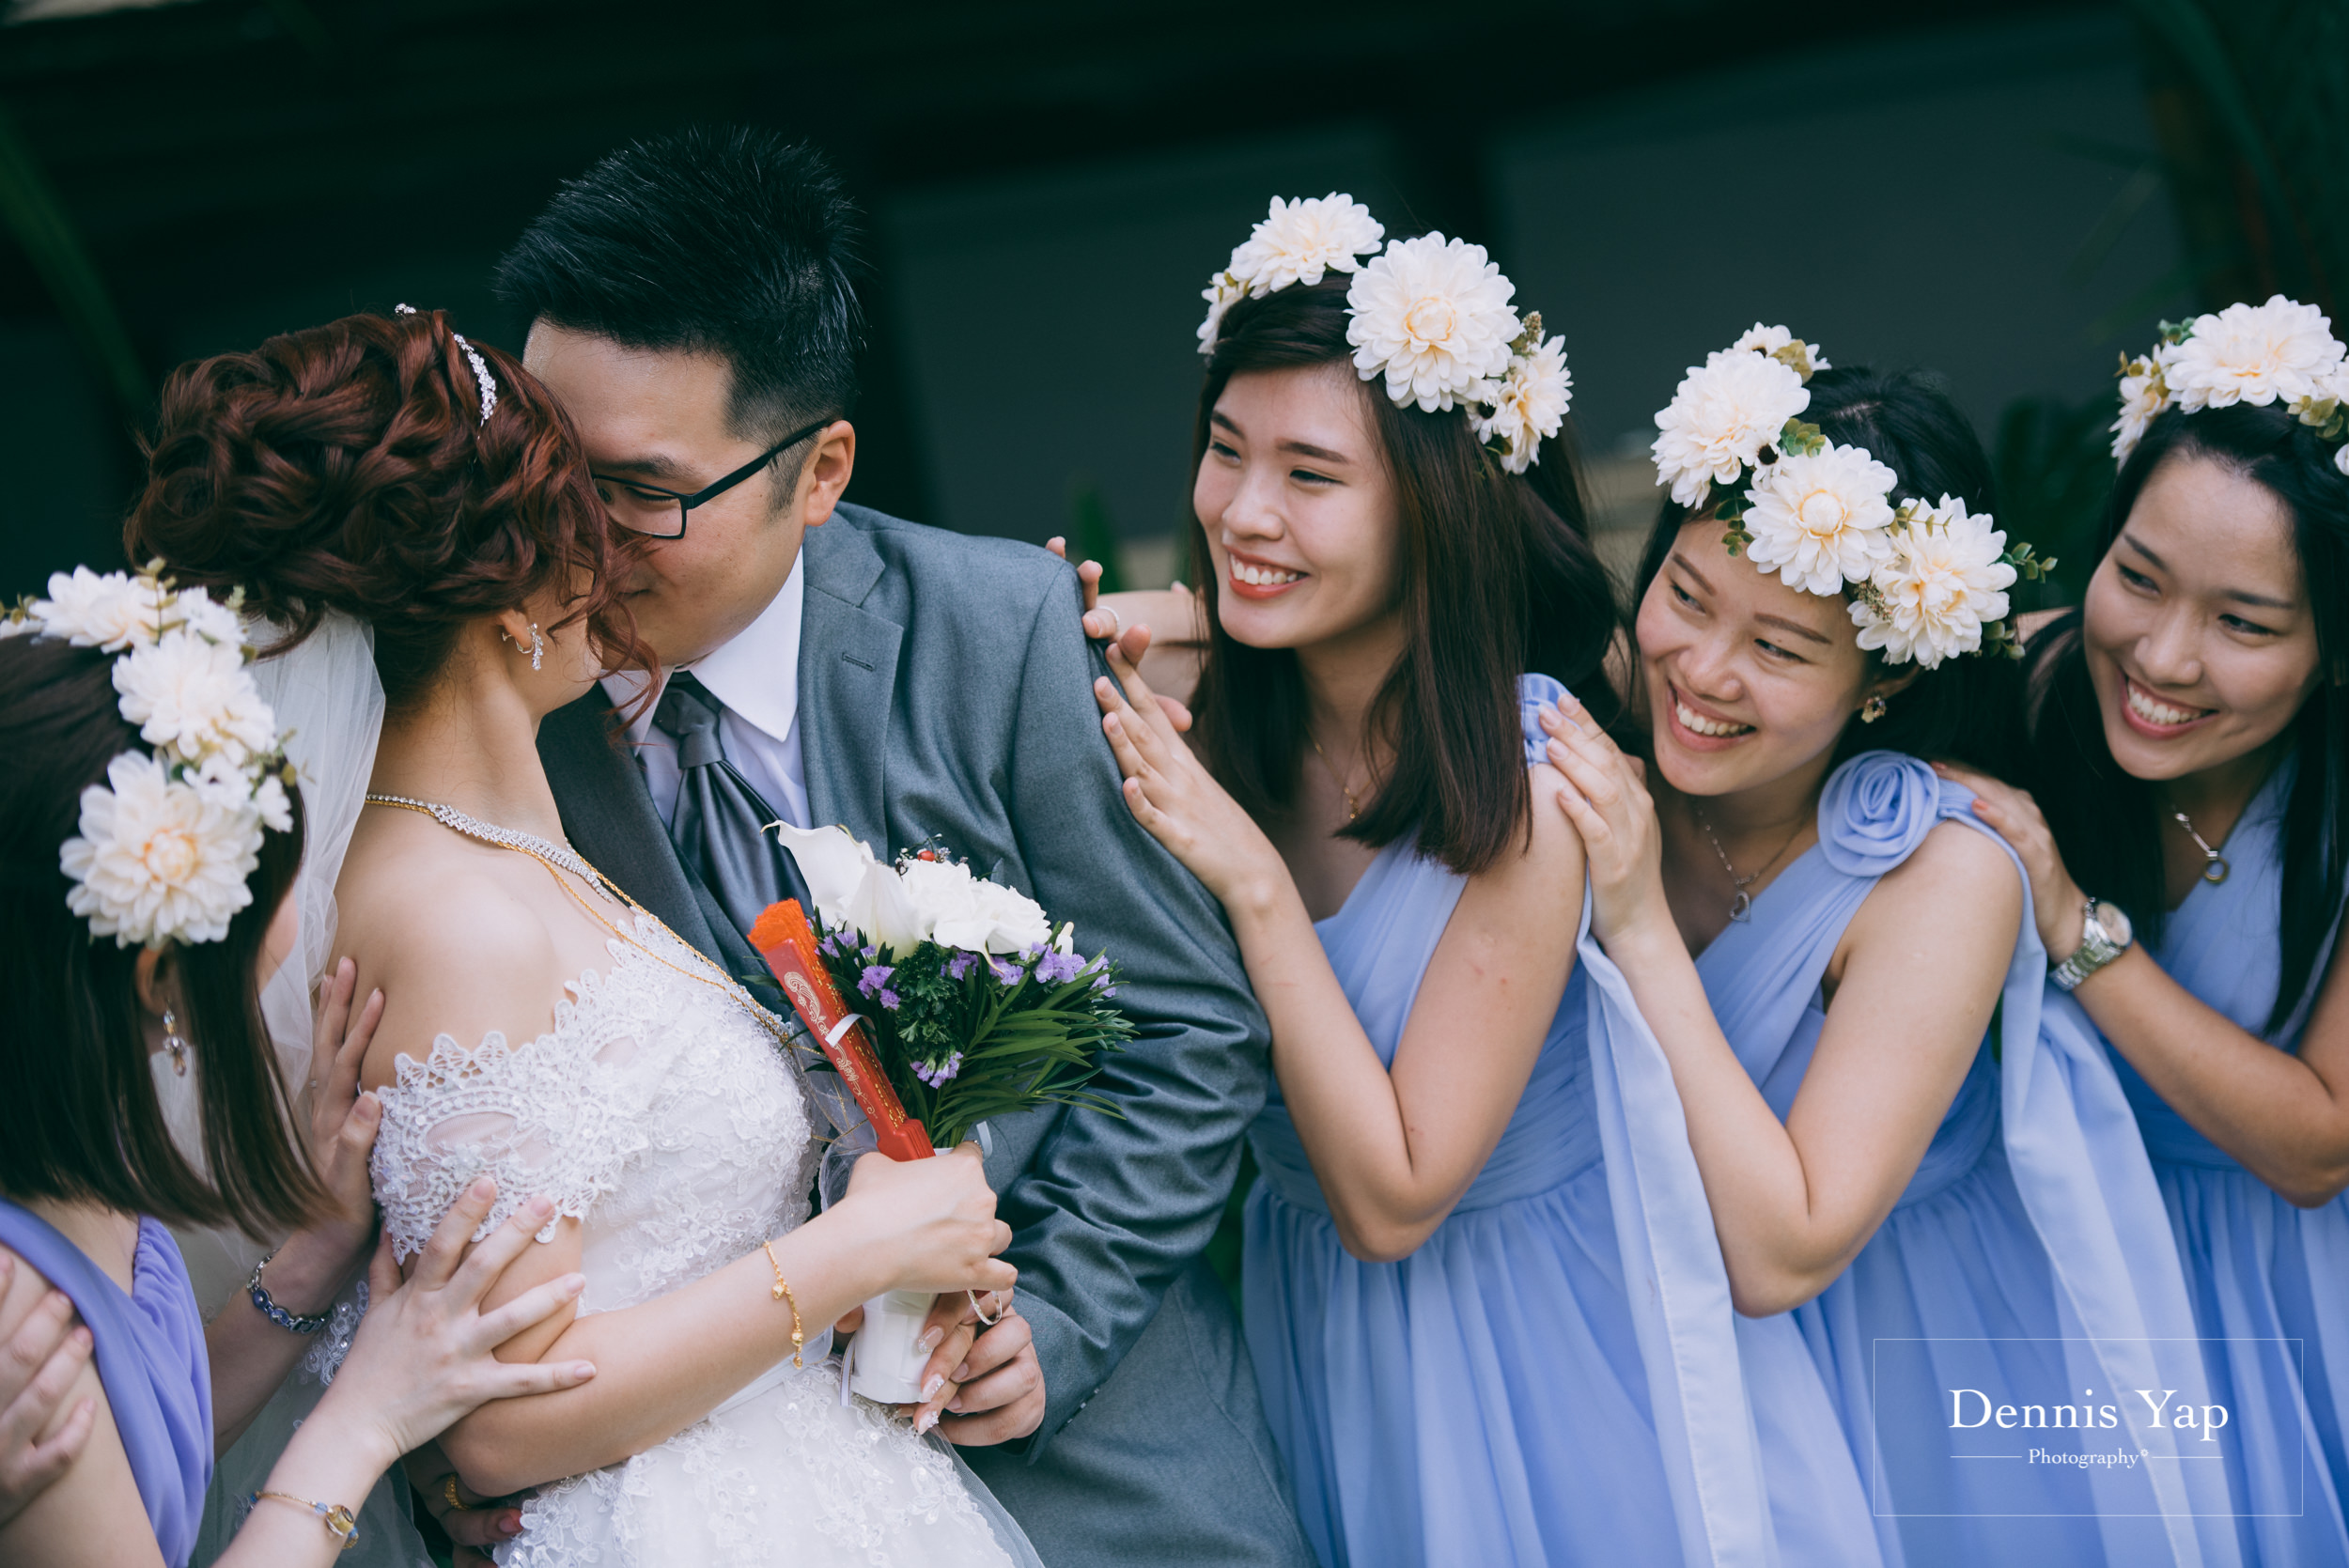 julian paige wedding gate crash malaysia dennis yap-10.jpg